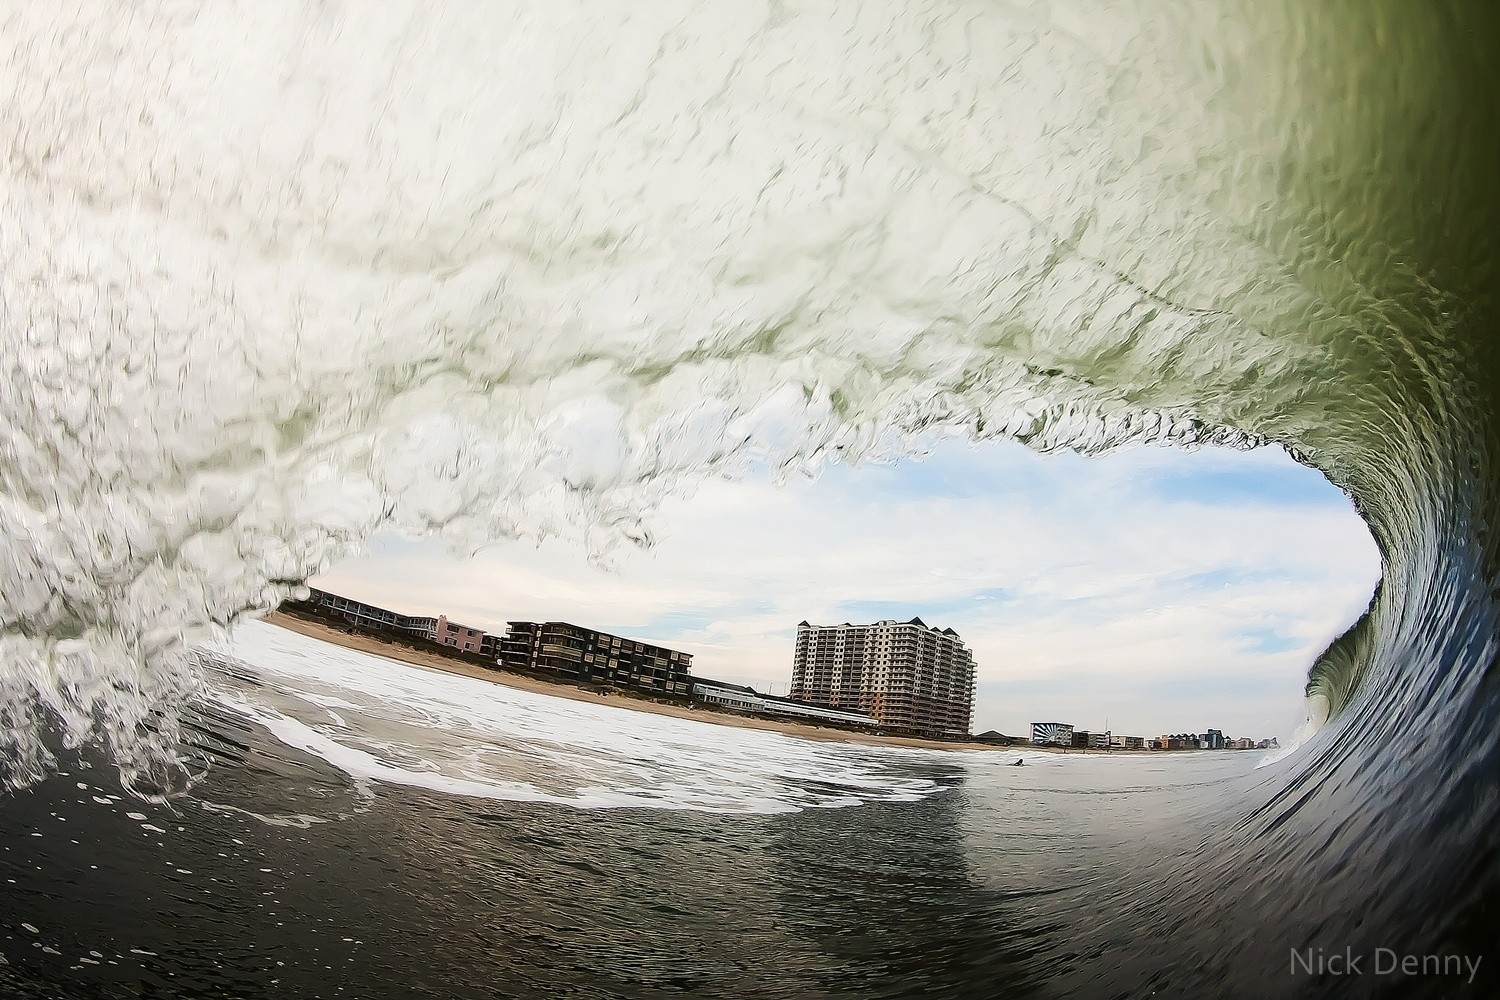 nickdennyphoto's photo of Ocean City, MD